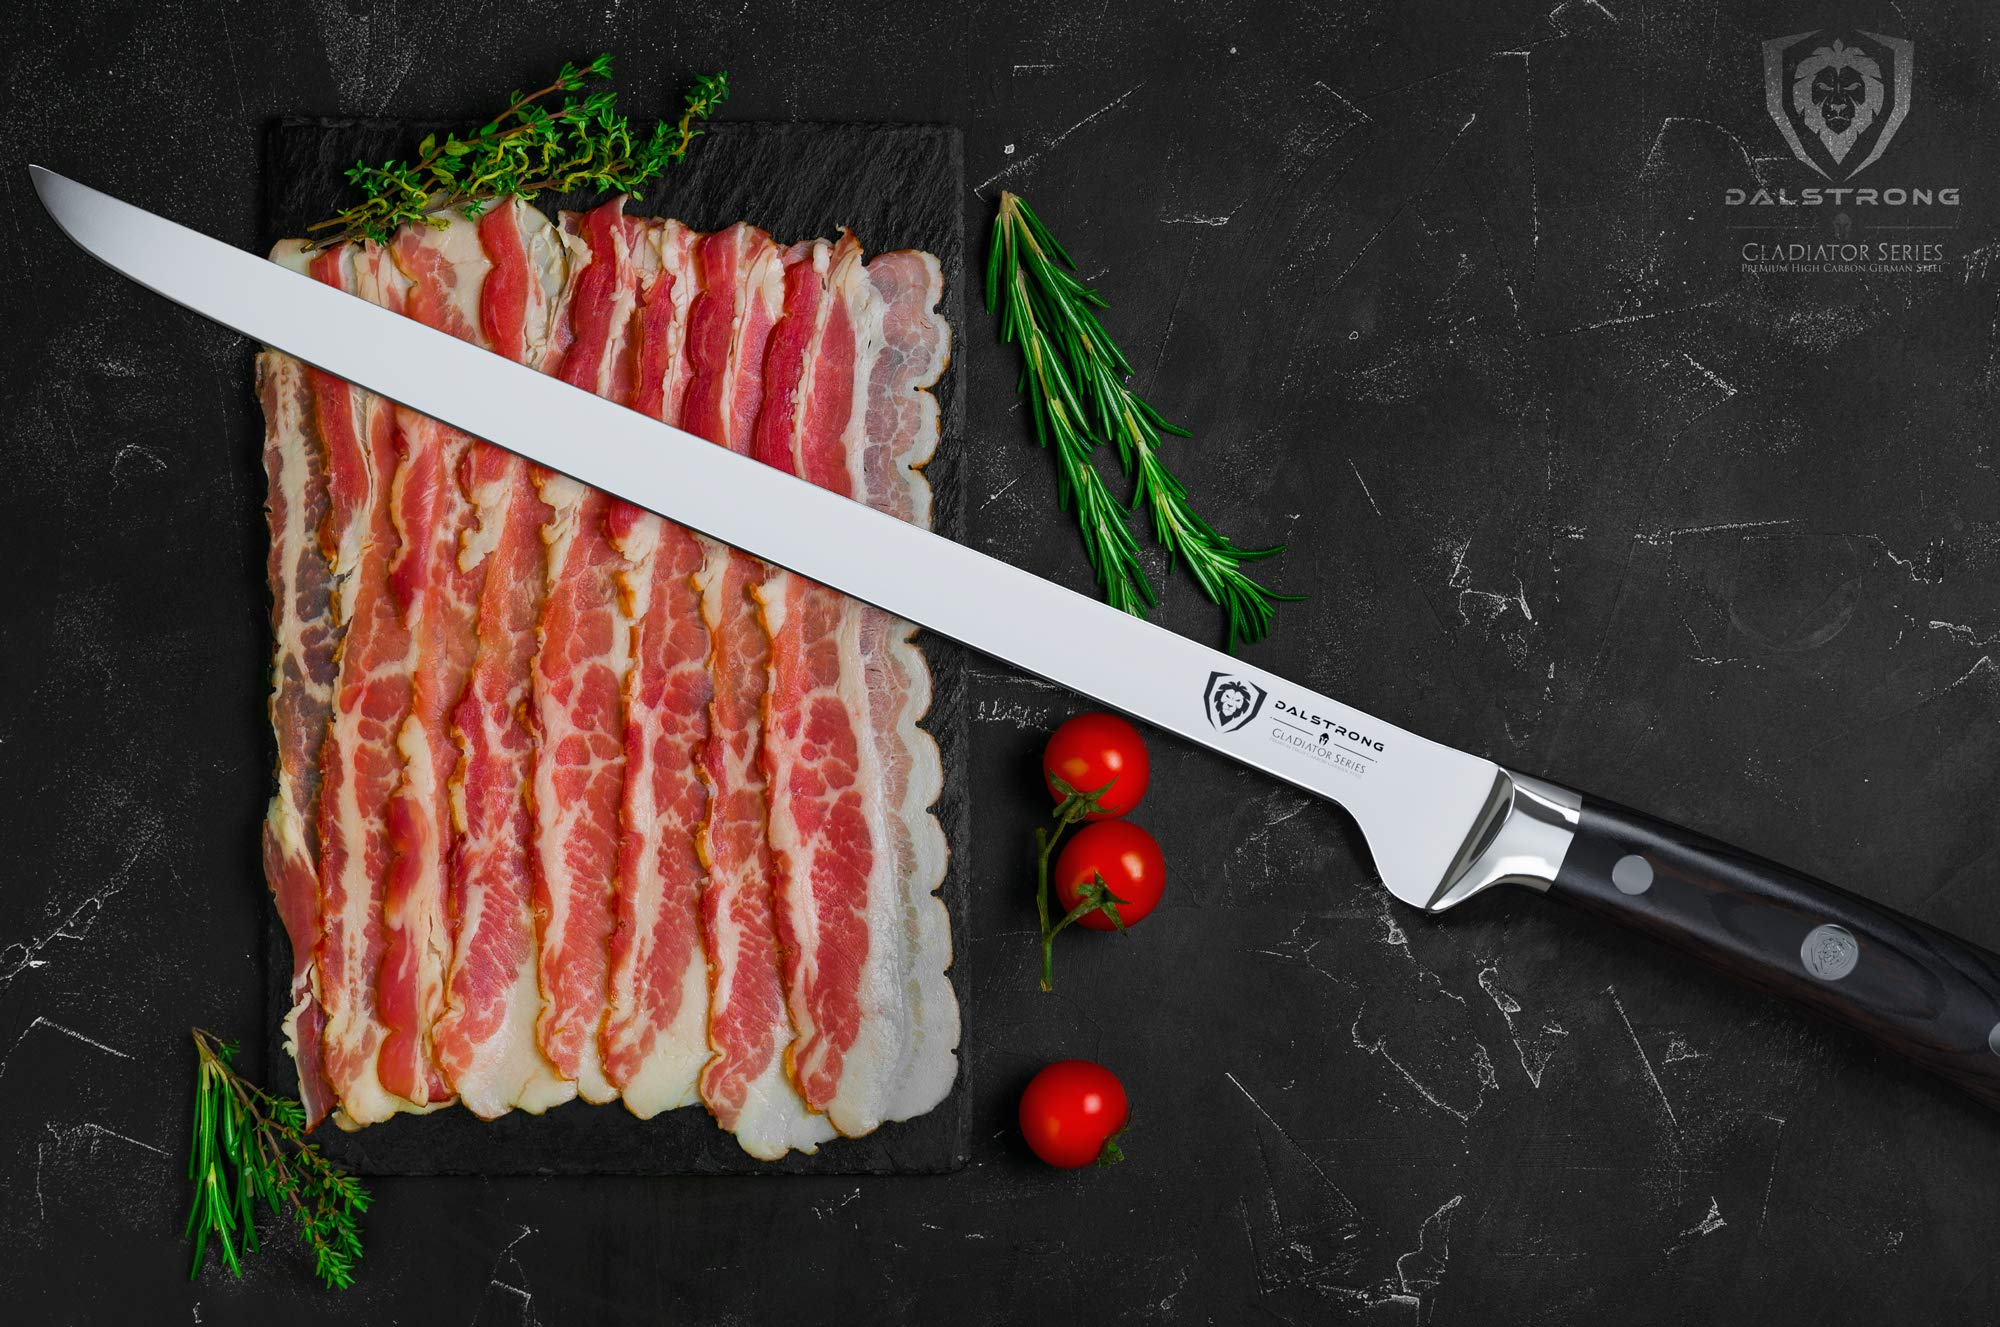 DALSTRONG - Spanish Style Meat & Ham Slicer - Gladiator Series - German HC Steel - 12'' w/Sheath by Dalstrong (Image #3)